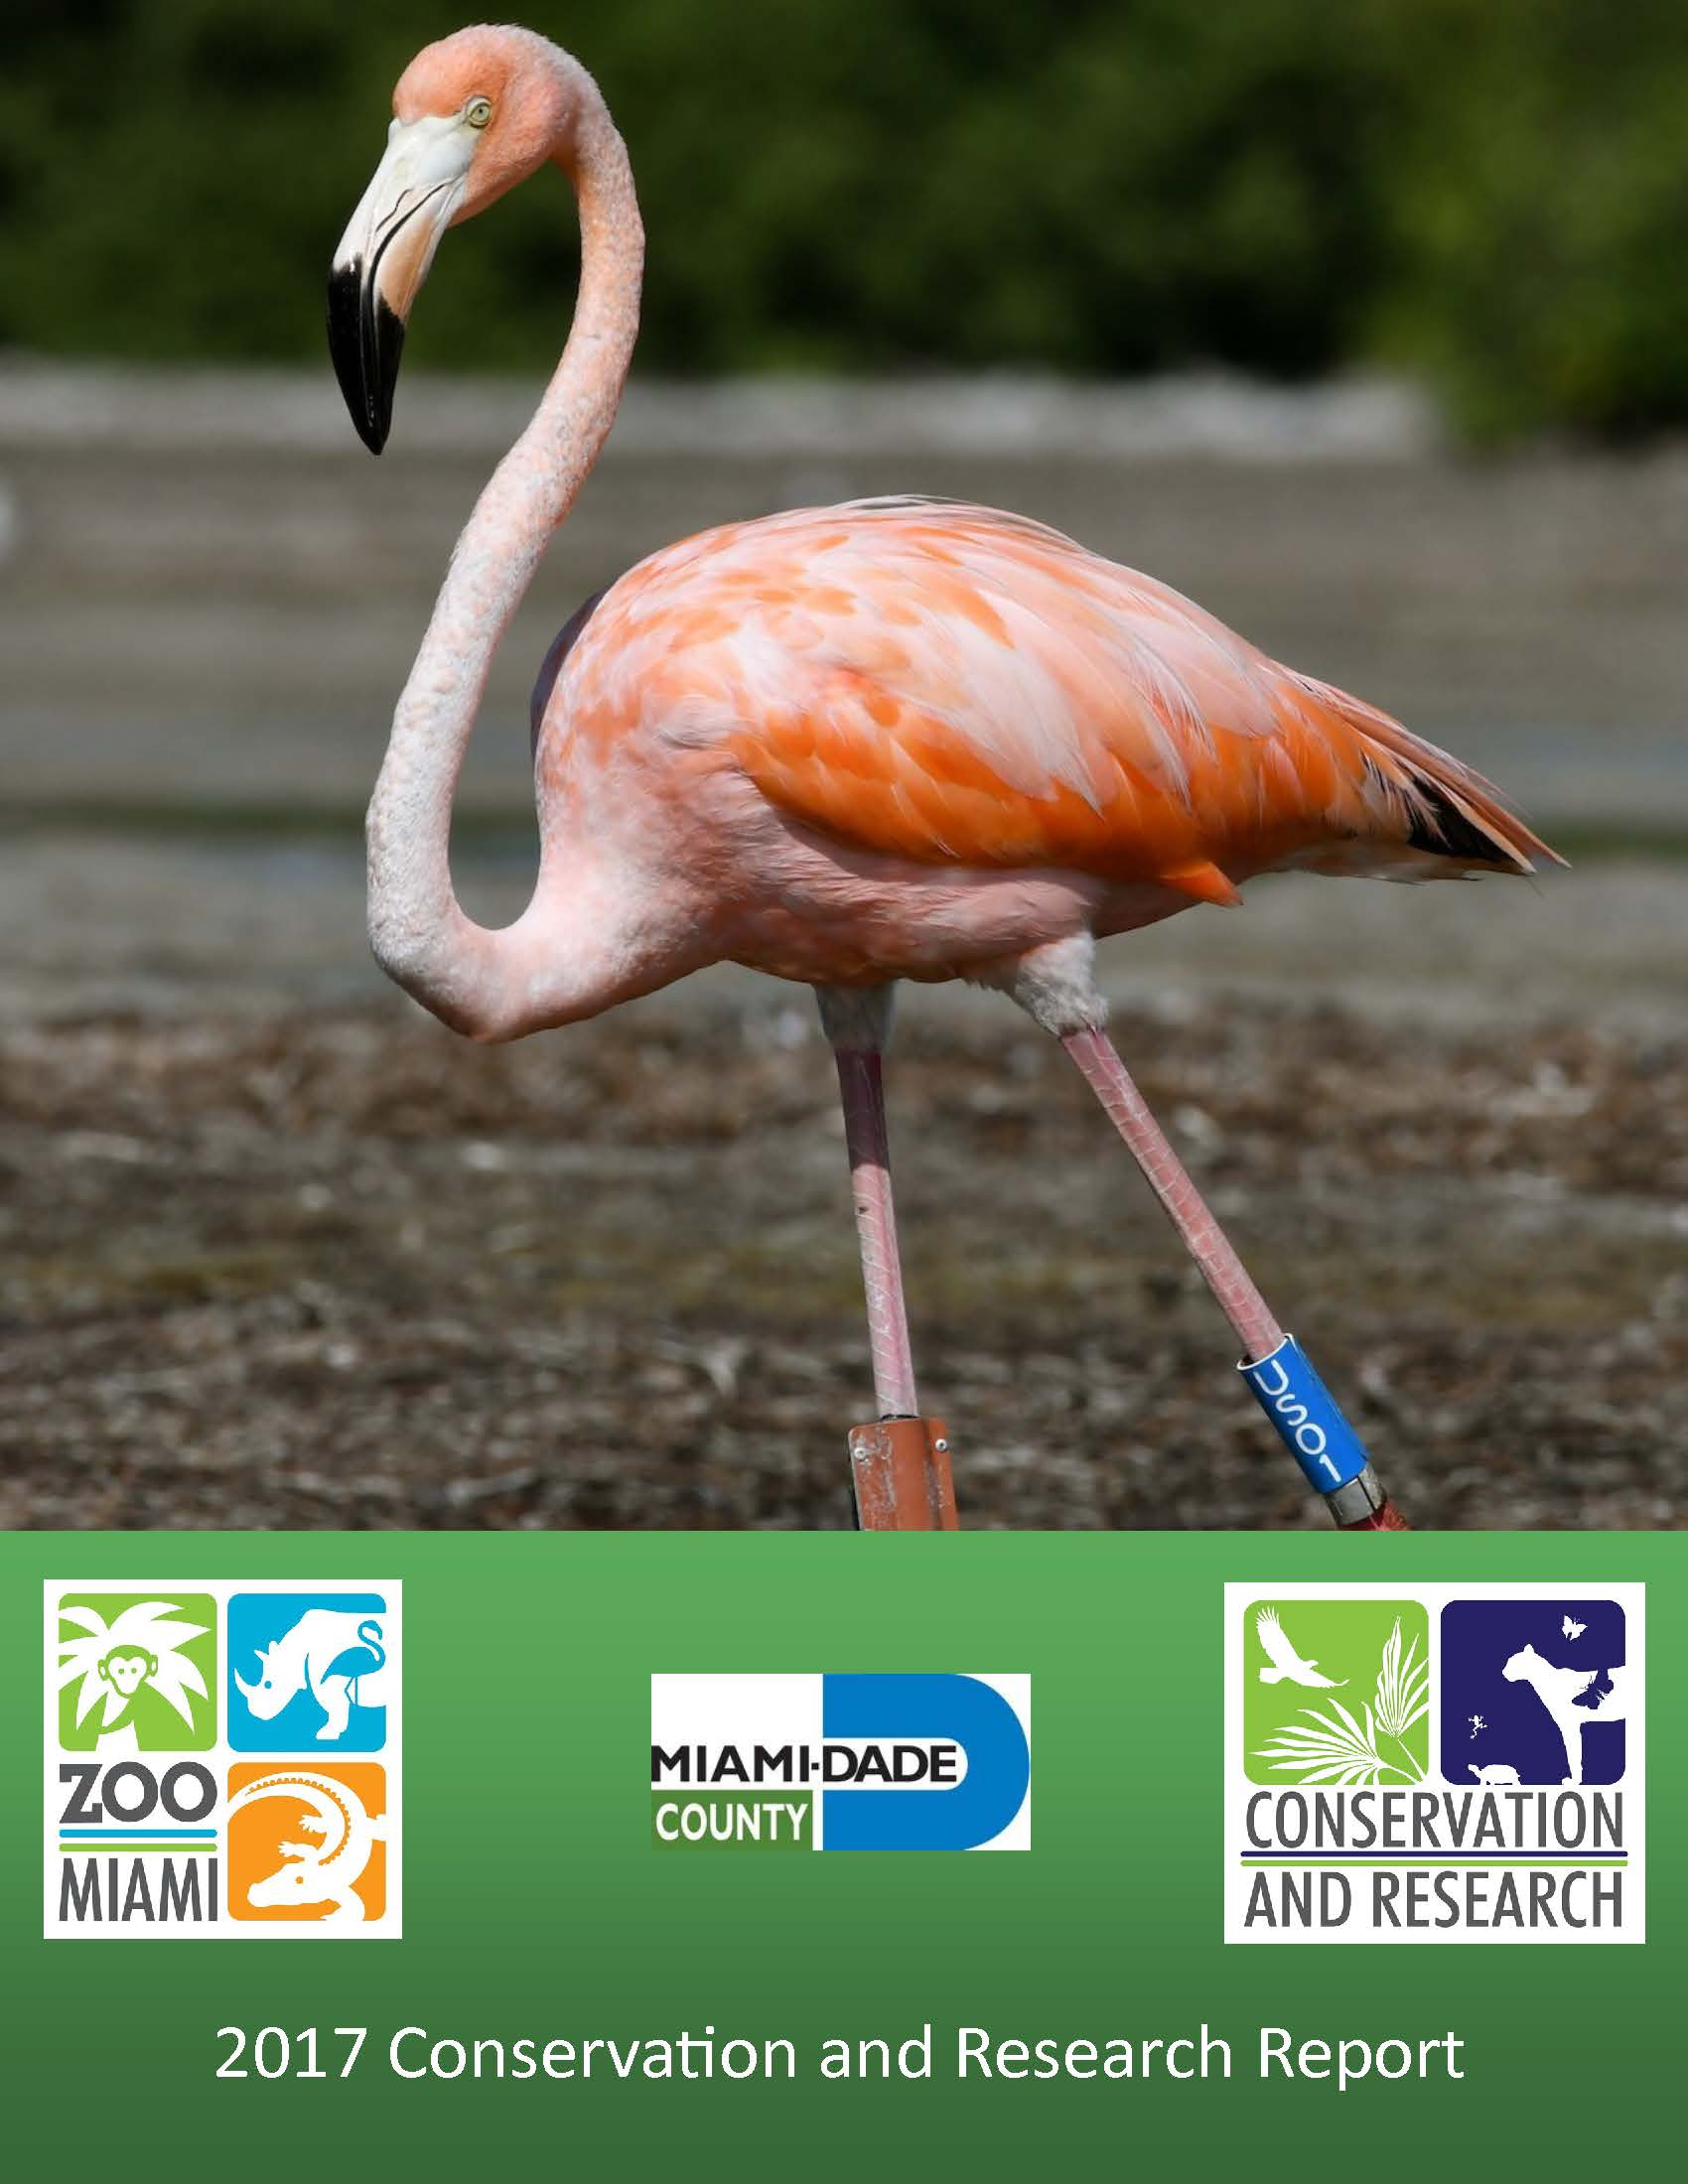 2017 Zoo Miami Conservation and Research Annual Report